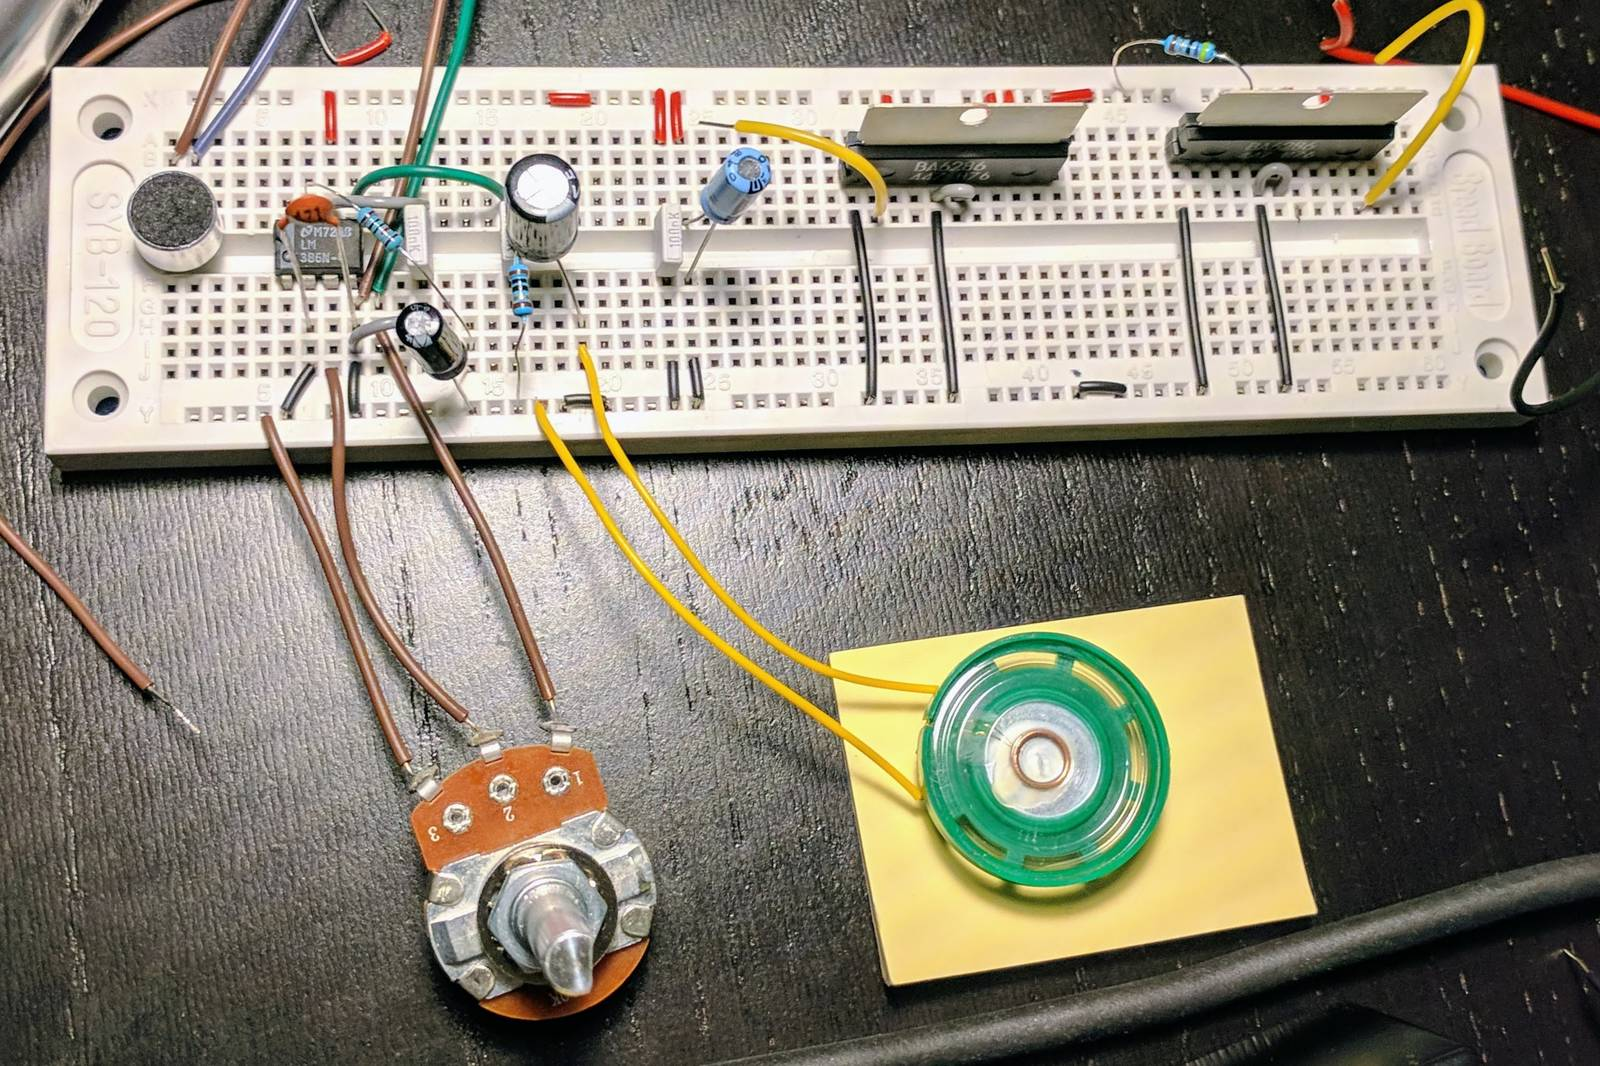 Breadboard with amplifier and motor circuits